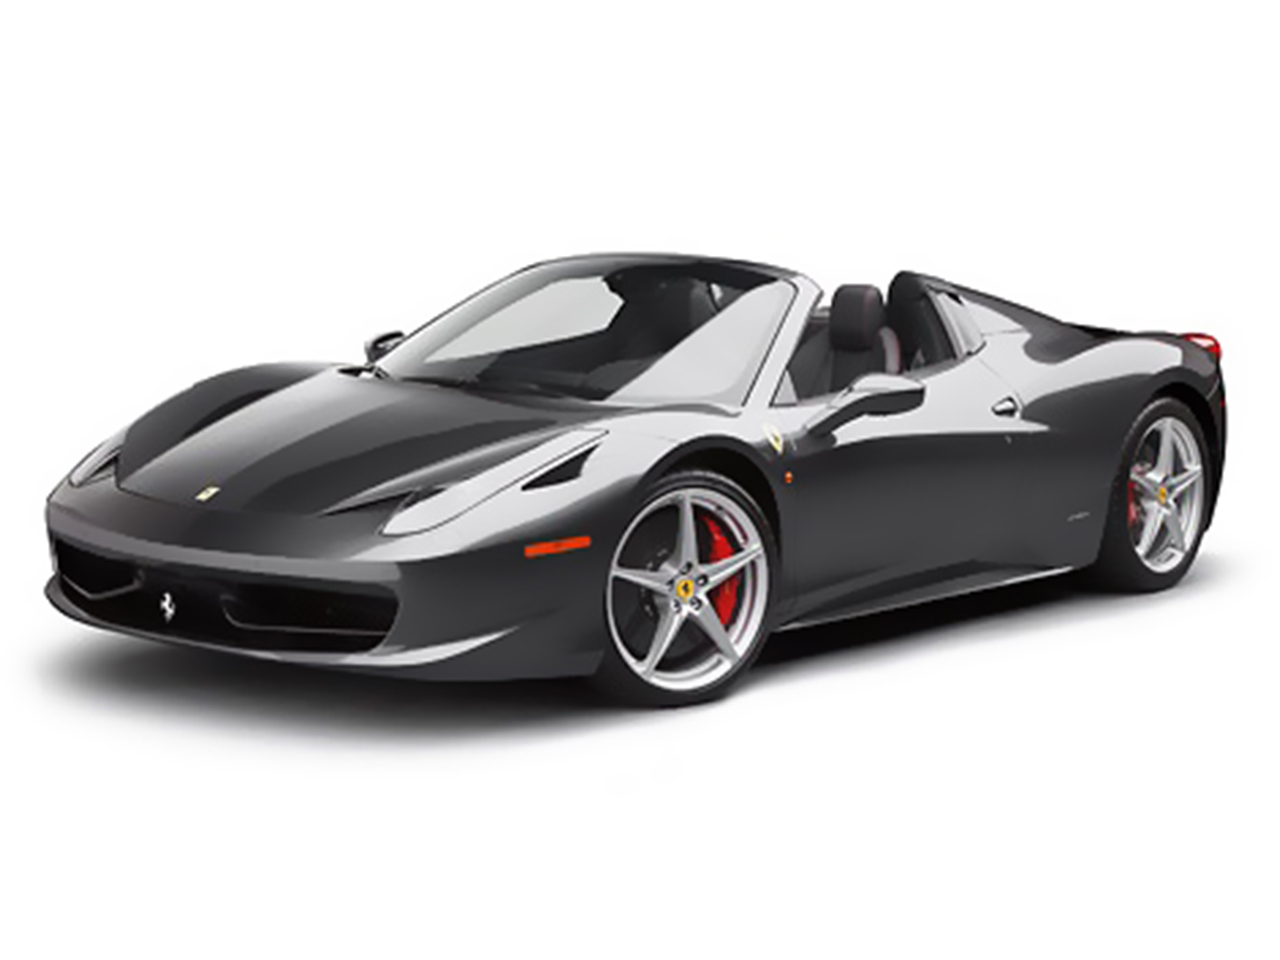 prices in india priced crore ferrari launched news at gtb rs ndtv